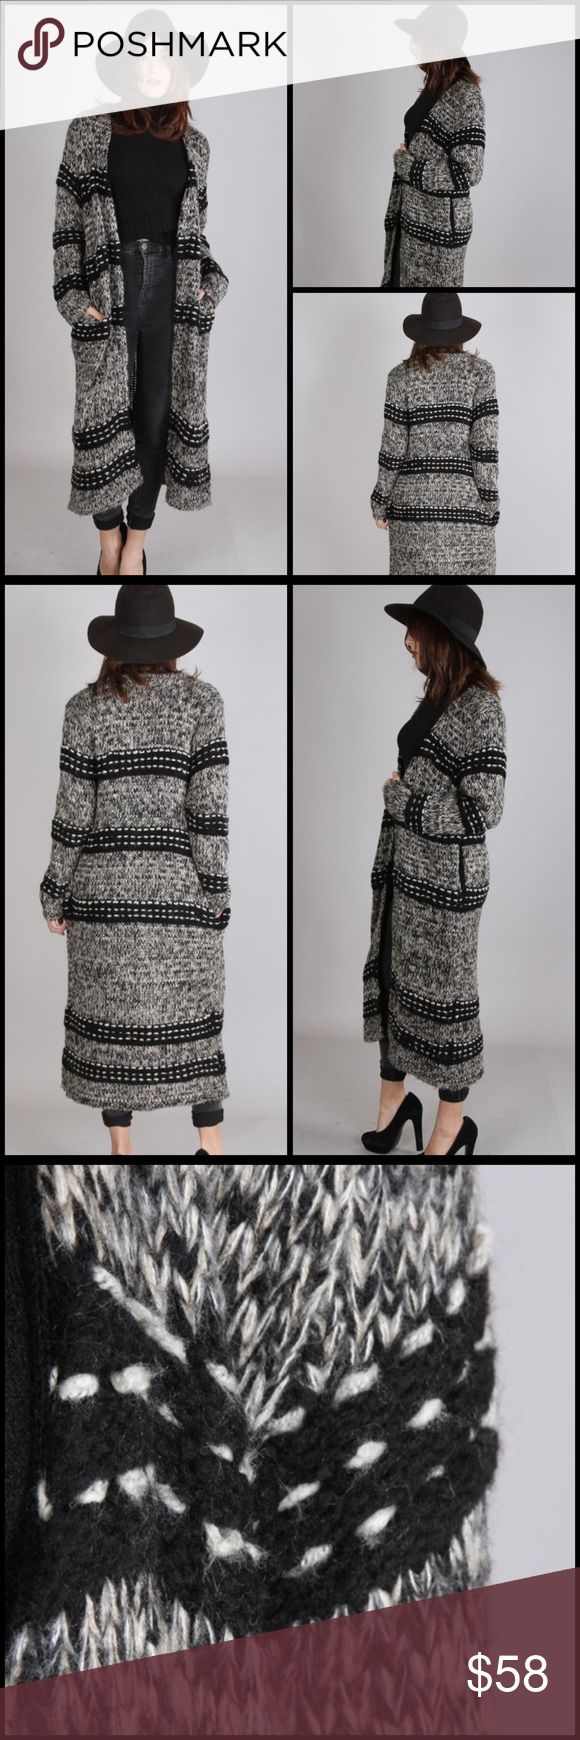 Black And White Maxi Sweater Coat Open front black and white knit pattern long sweater cardigan-coat. Features long sleeves and pockets. 75% acrylic 25% wool. Sweaters Cardigans